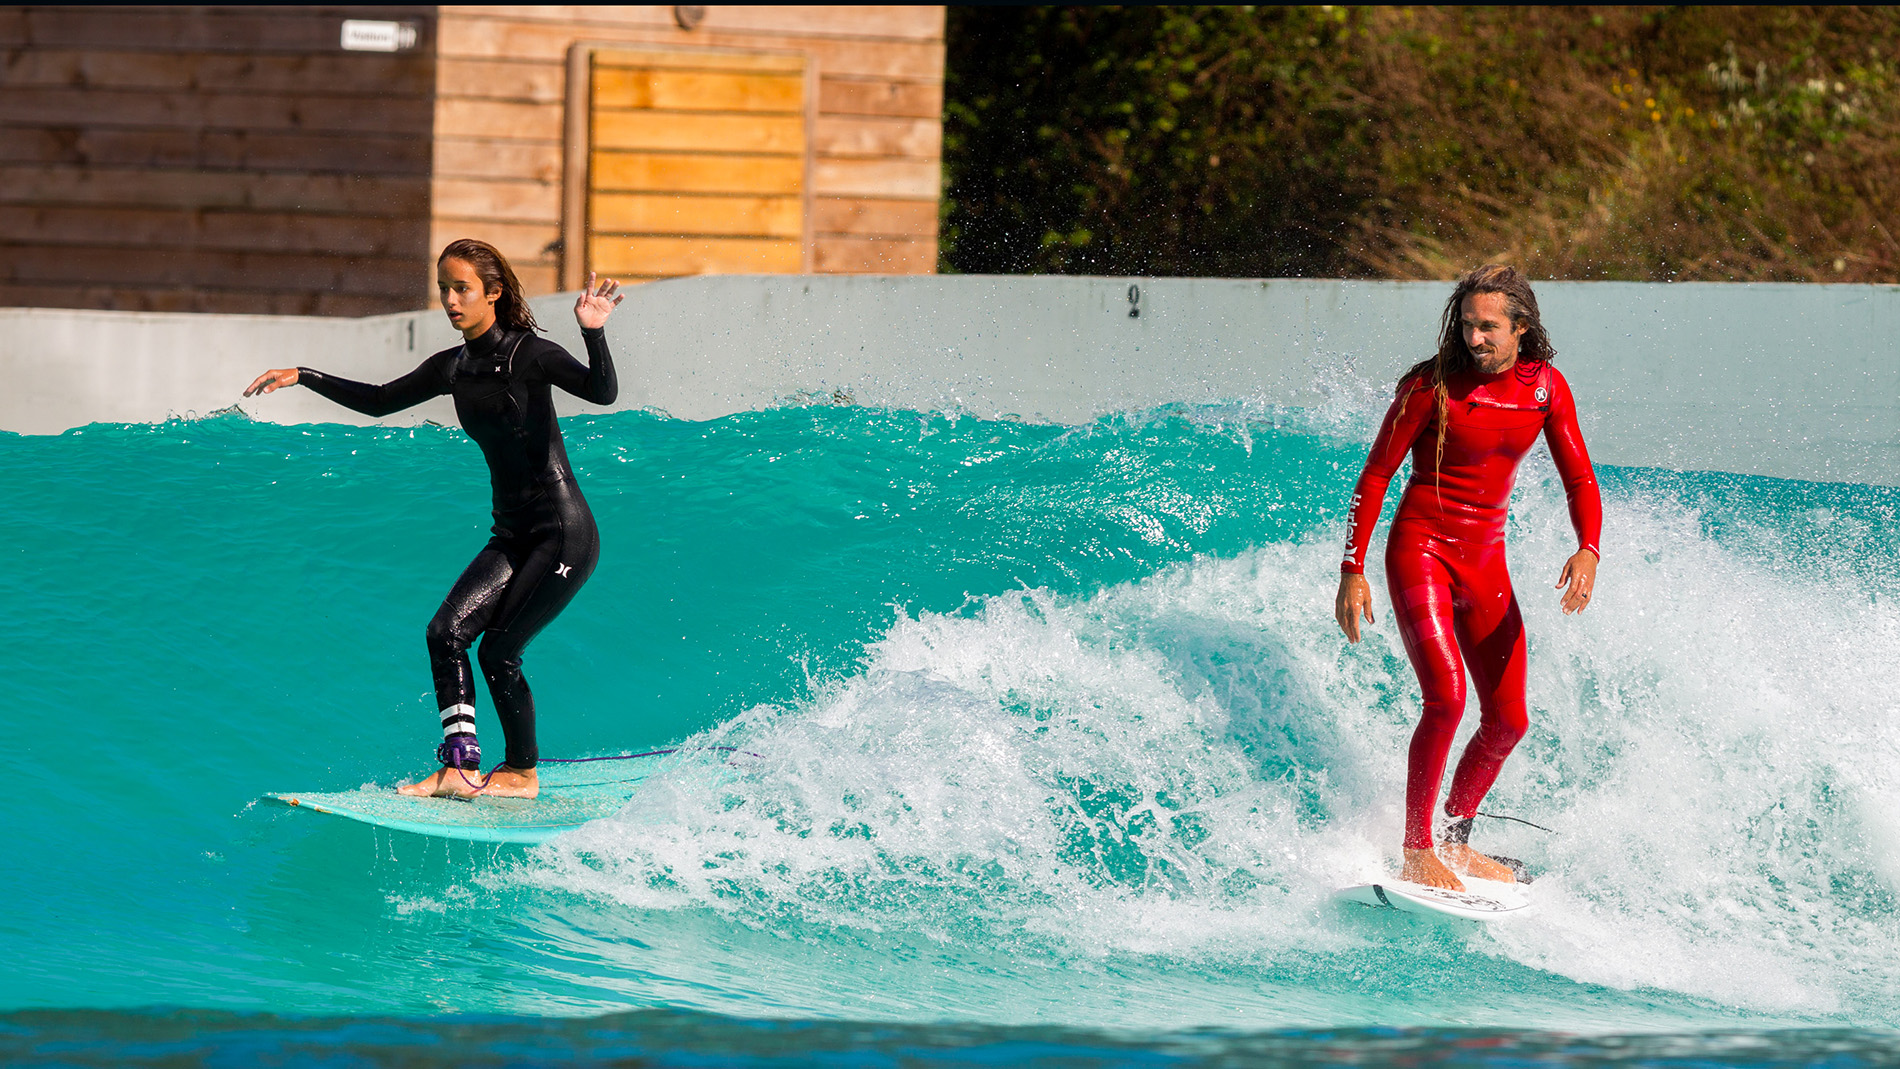 Rob Machado and daughter surf wave pool together